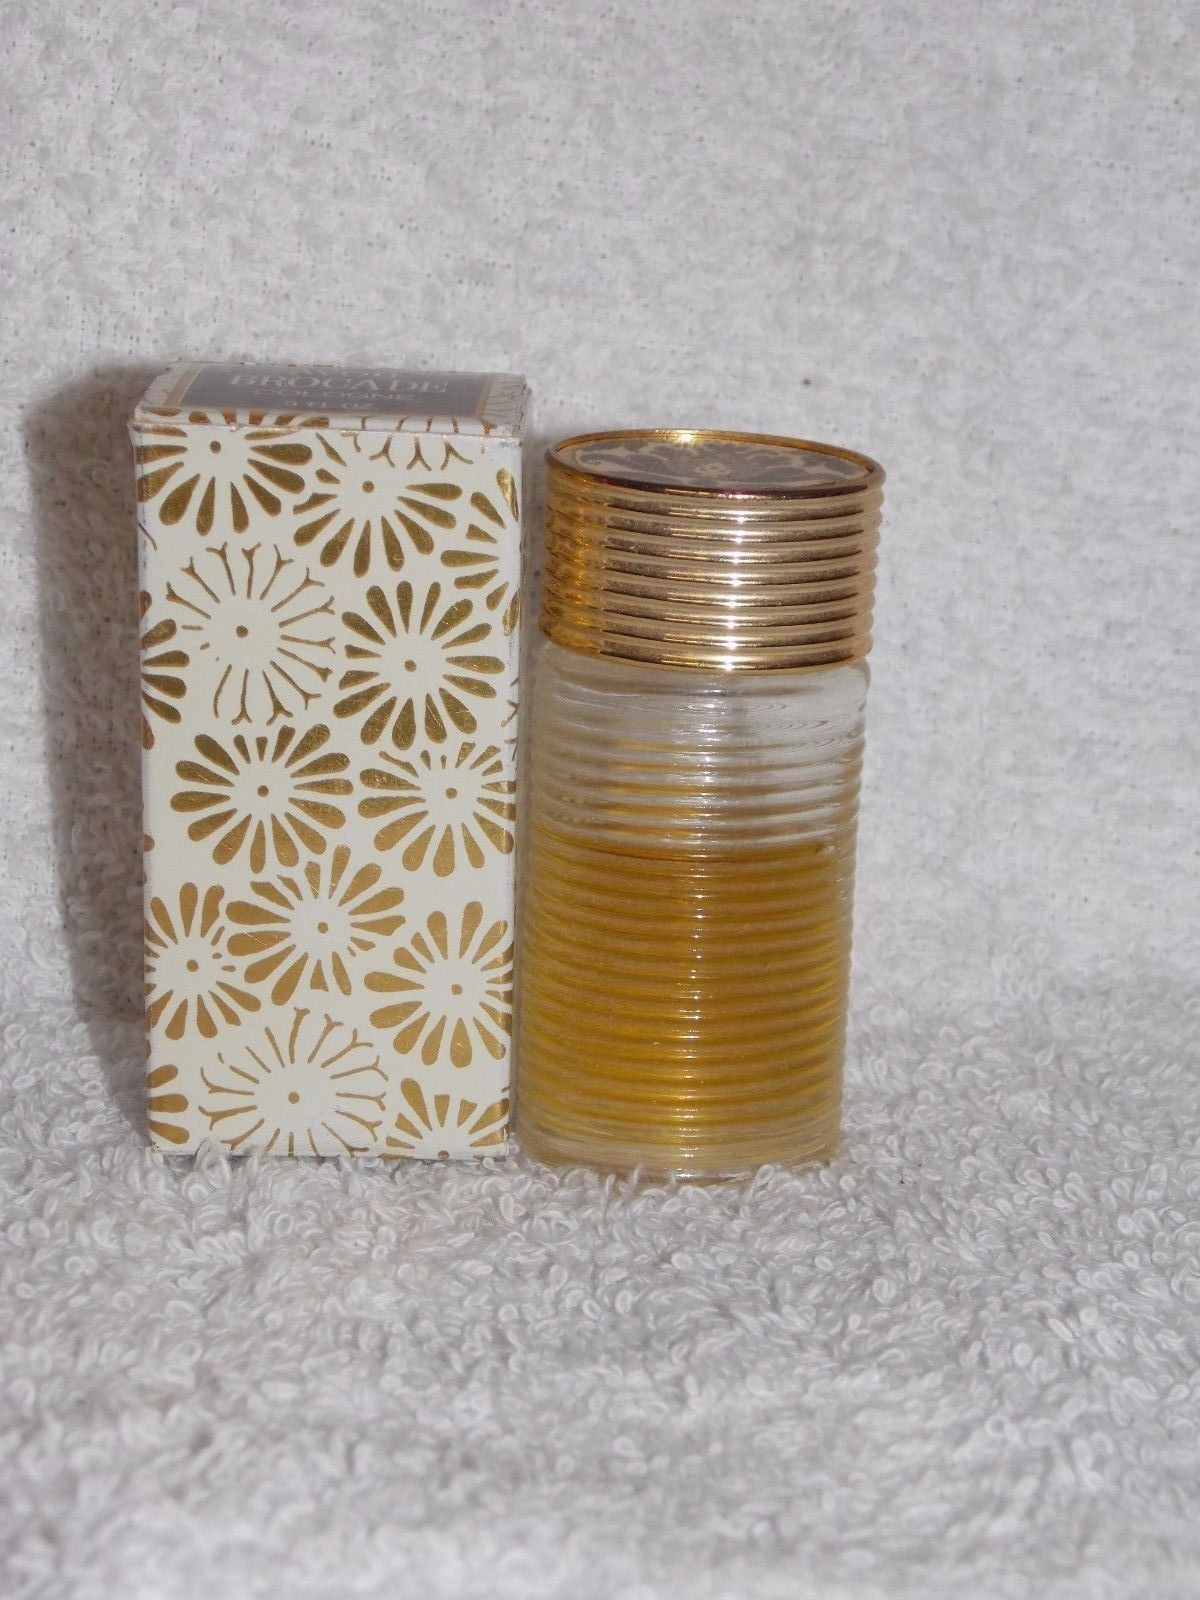 Primary image for Avon BROCADE Cologne Splash For Women .5 oz/ Used Mini Bottle 70% Full Bottle